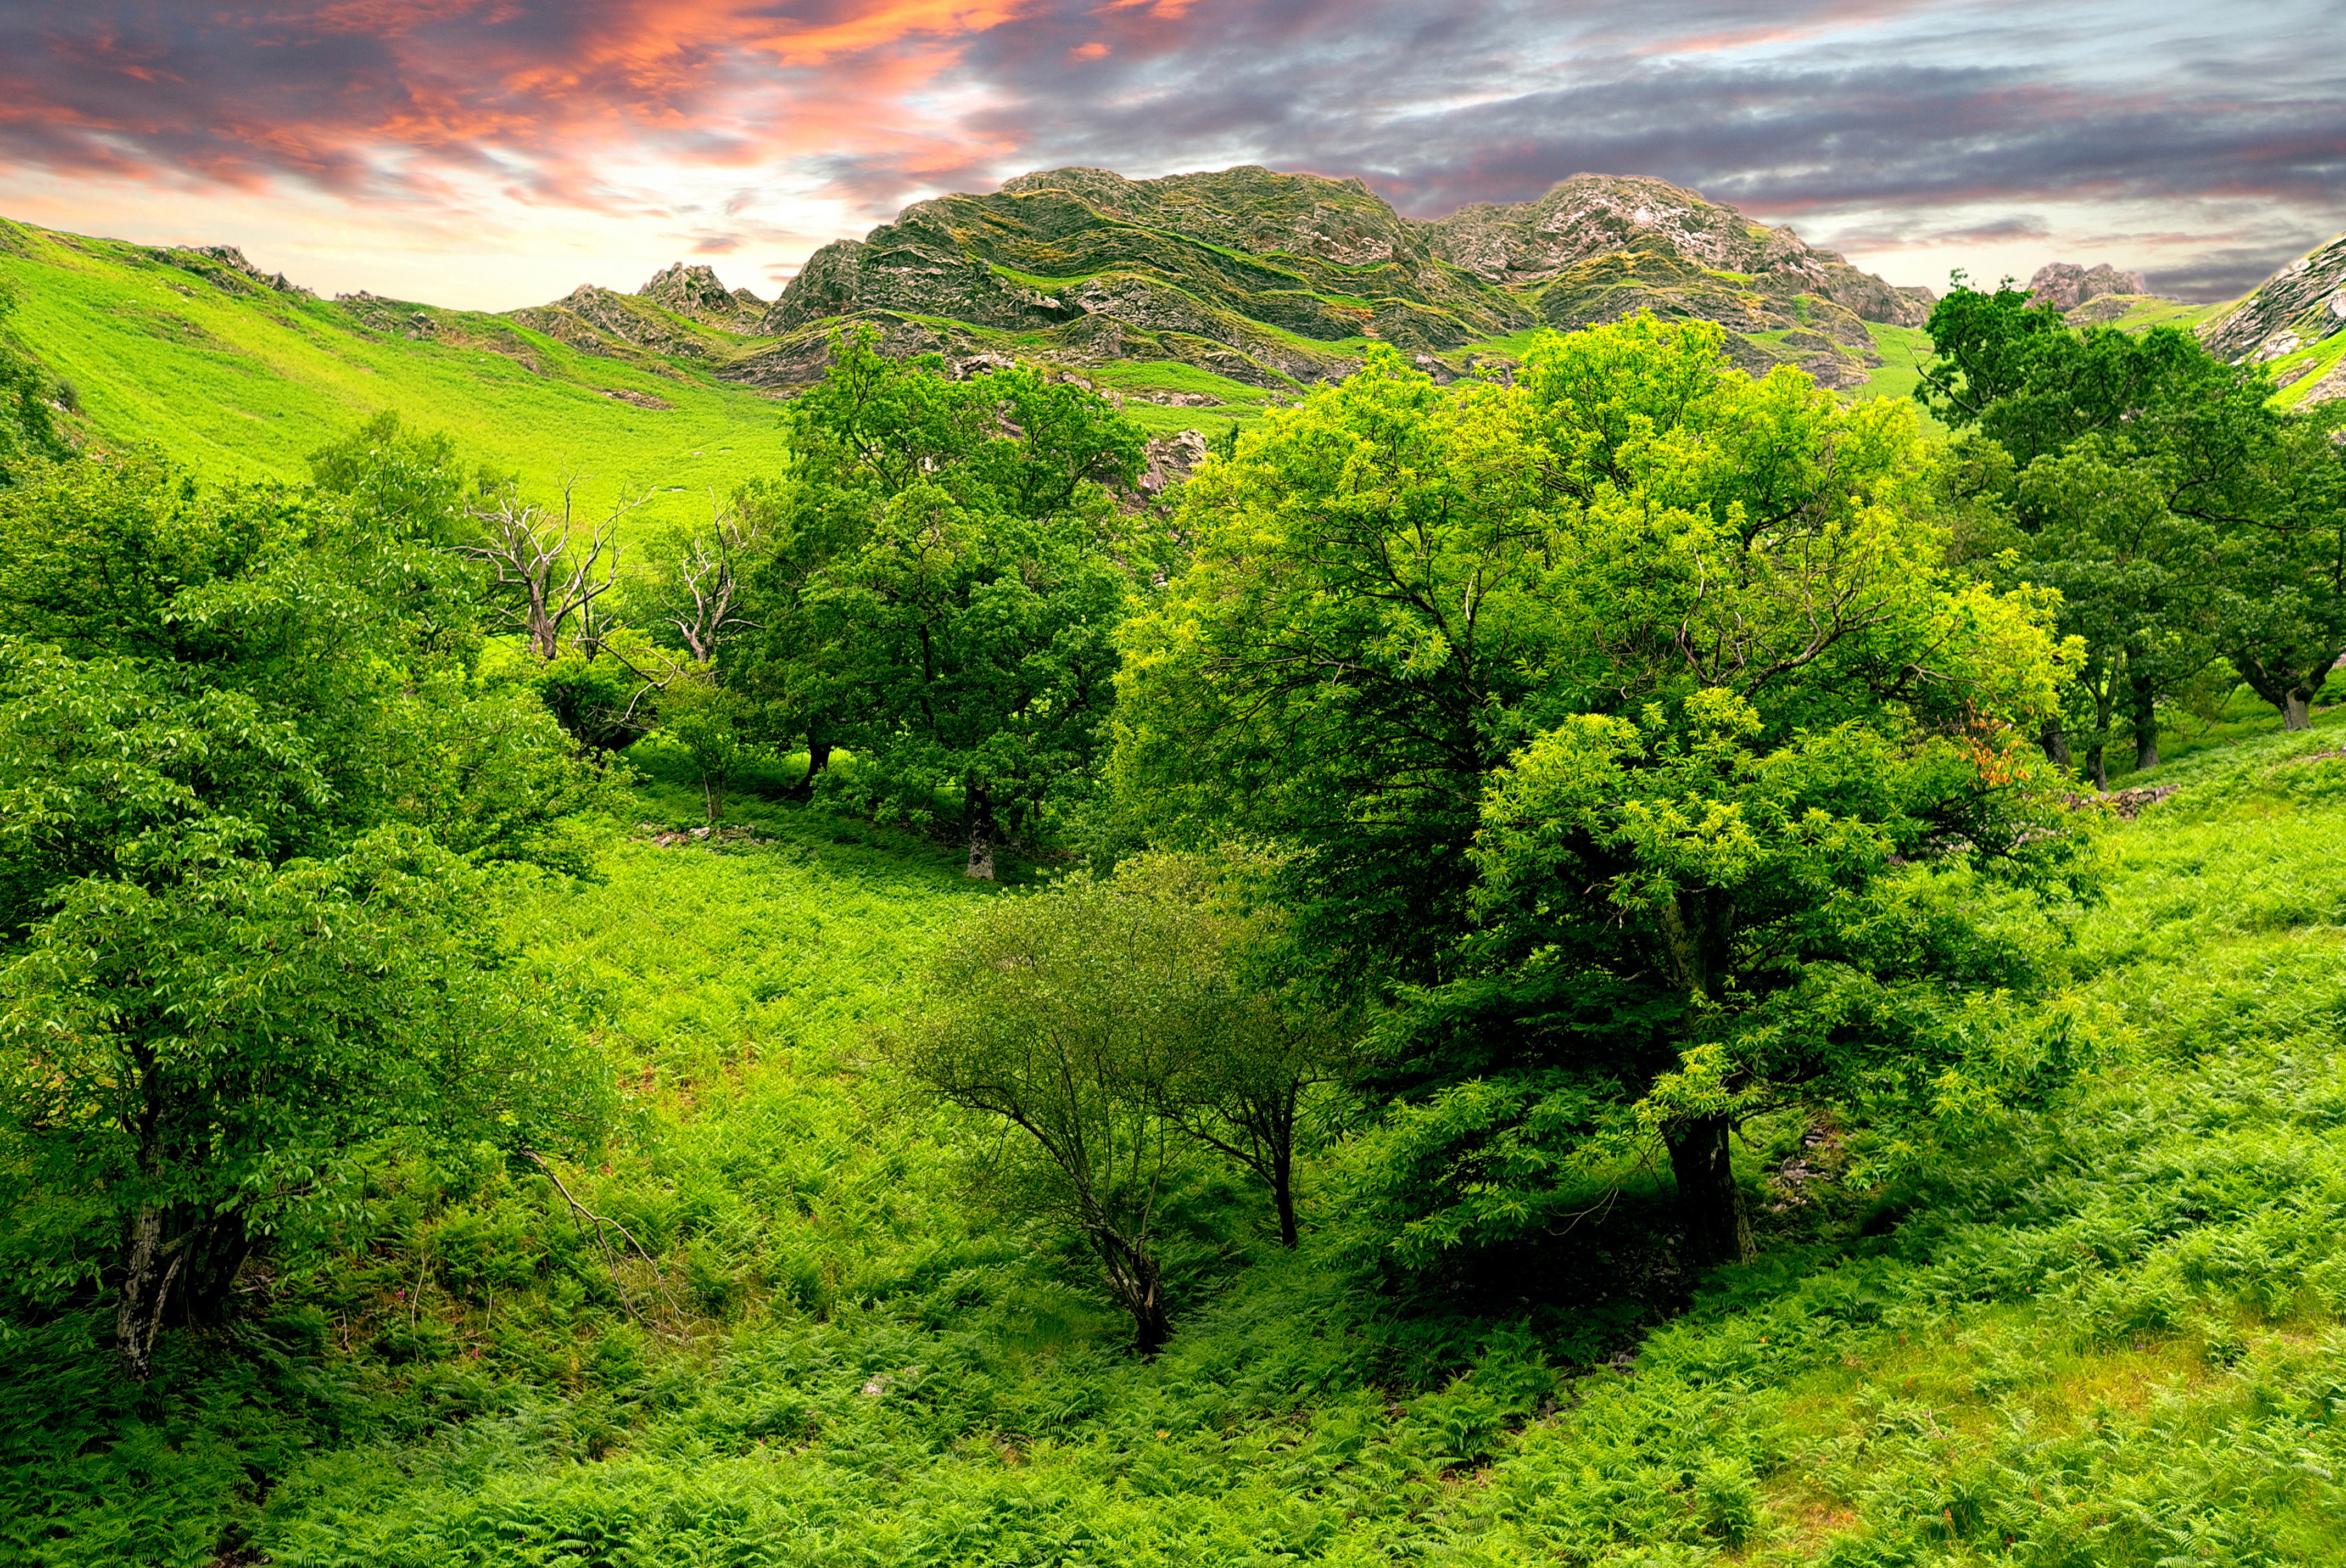 Green landscape wallpapers 4272x2856 15145649 for Nature wallpaper for walls